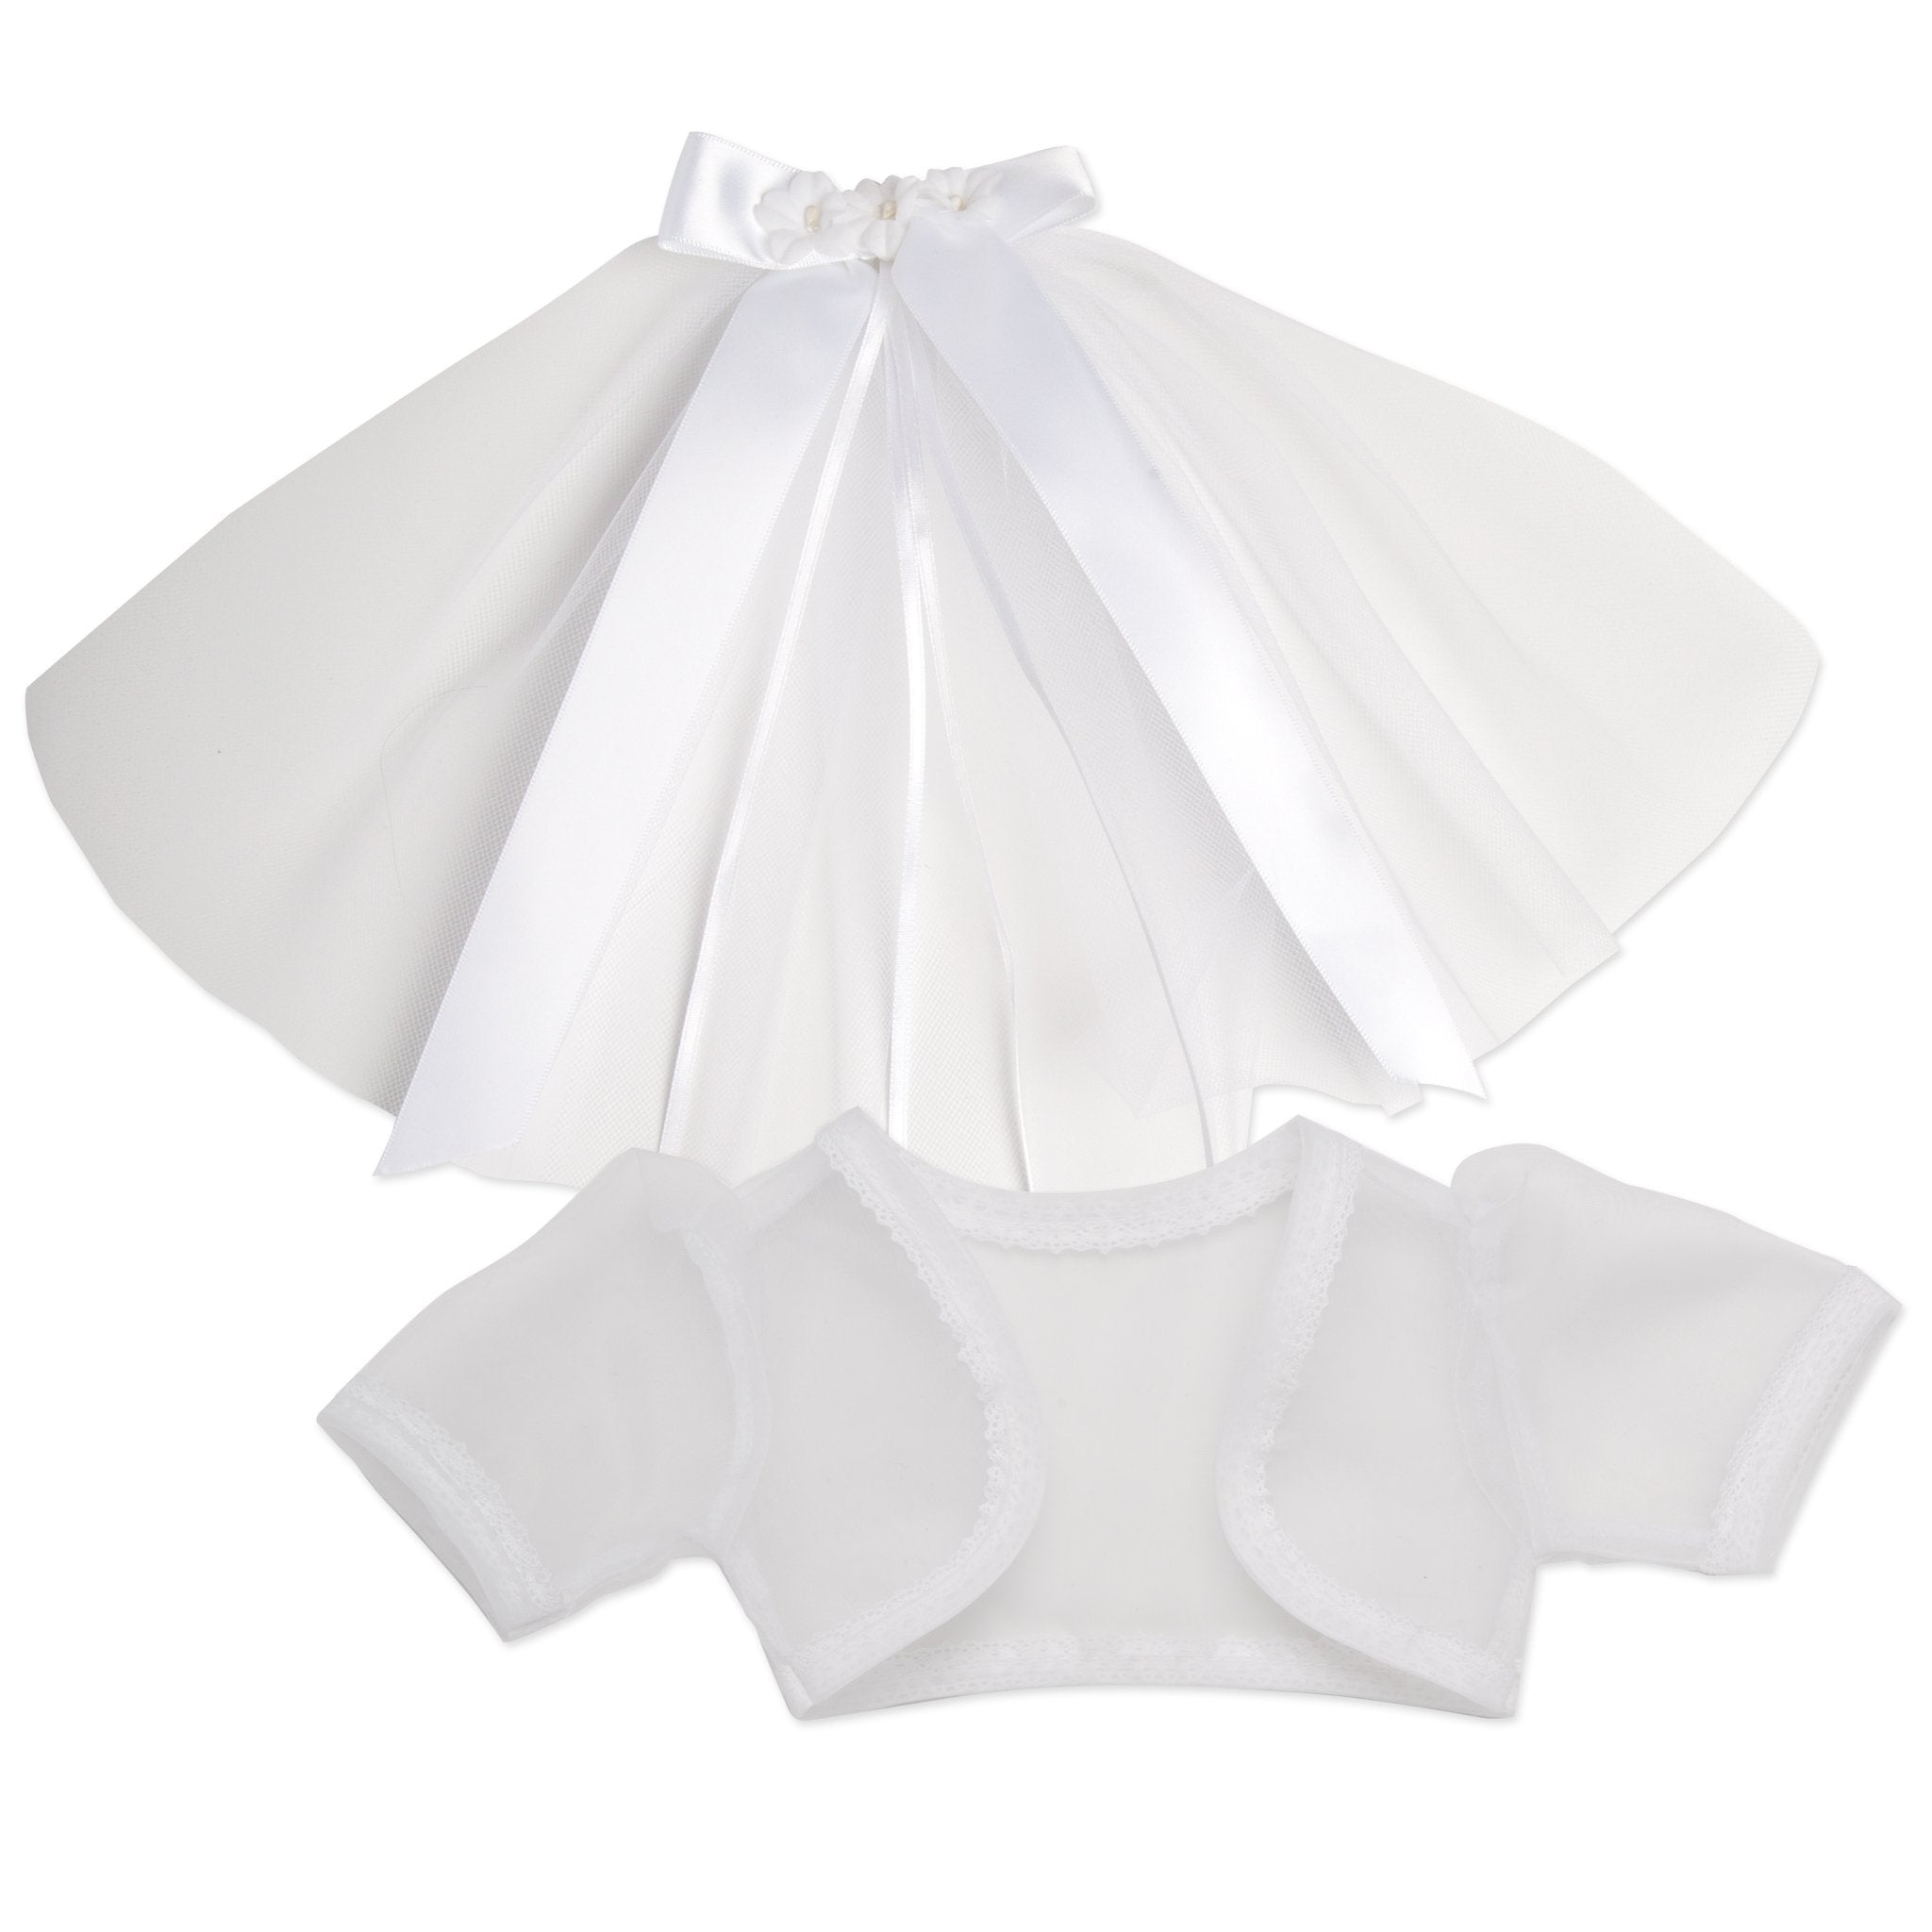 Special Occasion white hair barrette with detachable veil and bolero jacket fits all 18 inch dolls.